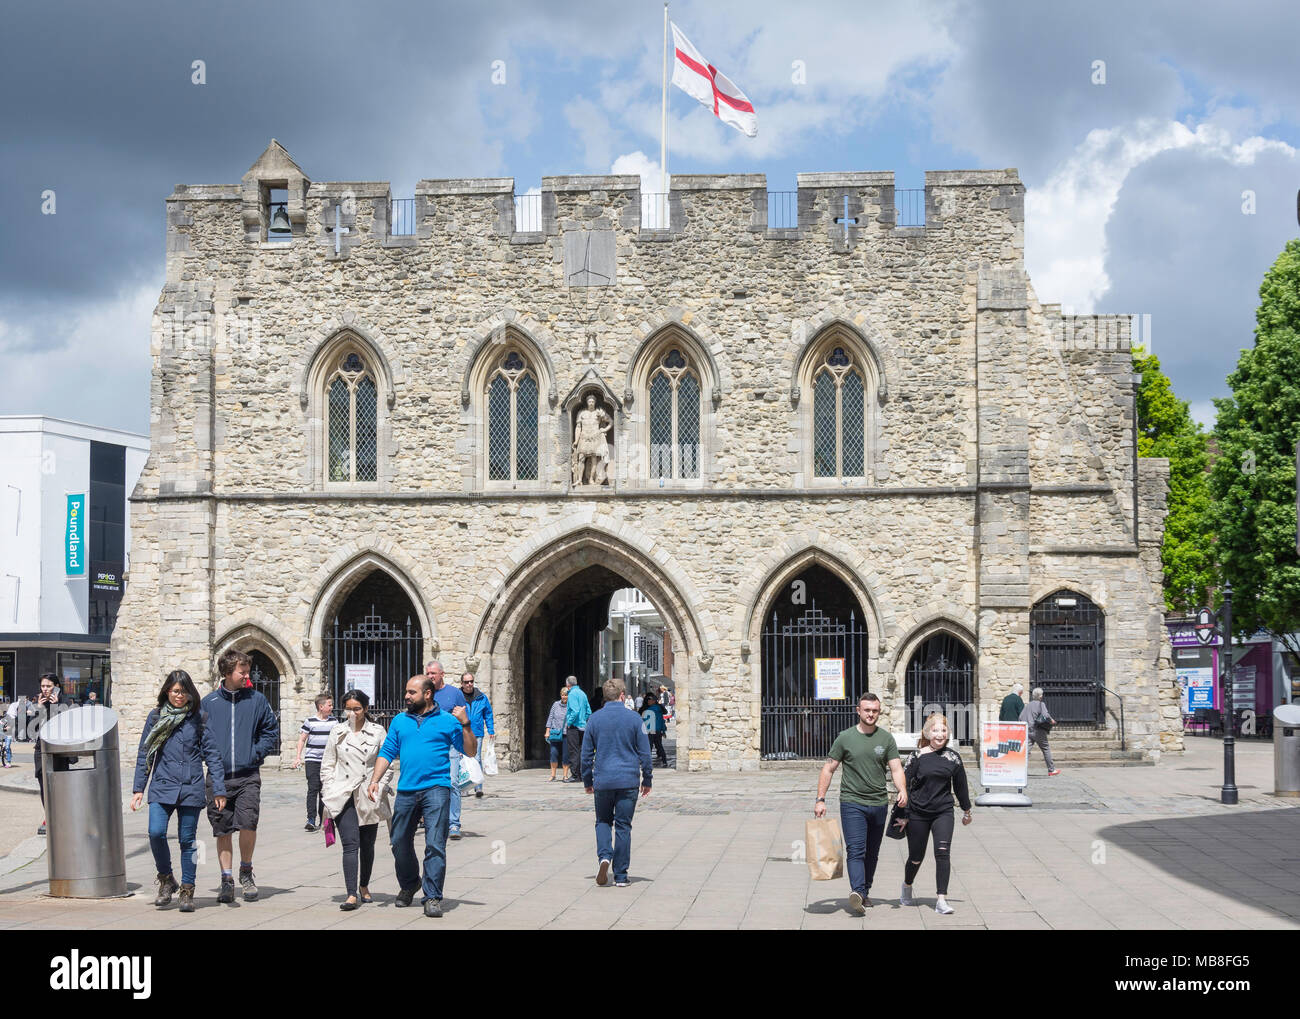 The 12th century Bargate and Guildhall, High Street, Old Town, Southampton, Hampshire, England, United Kingdom - Stock Image